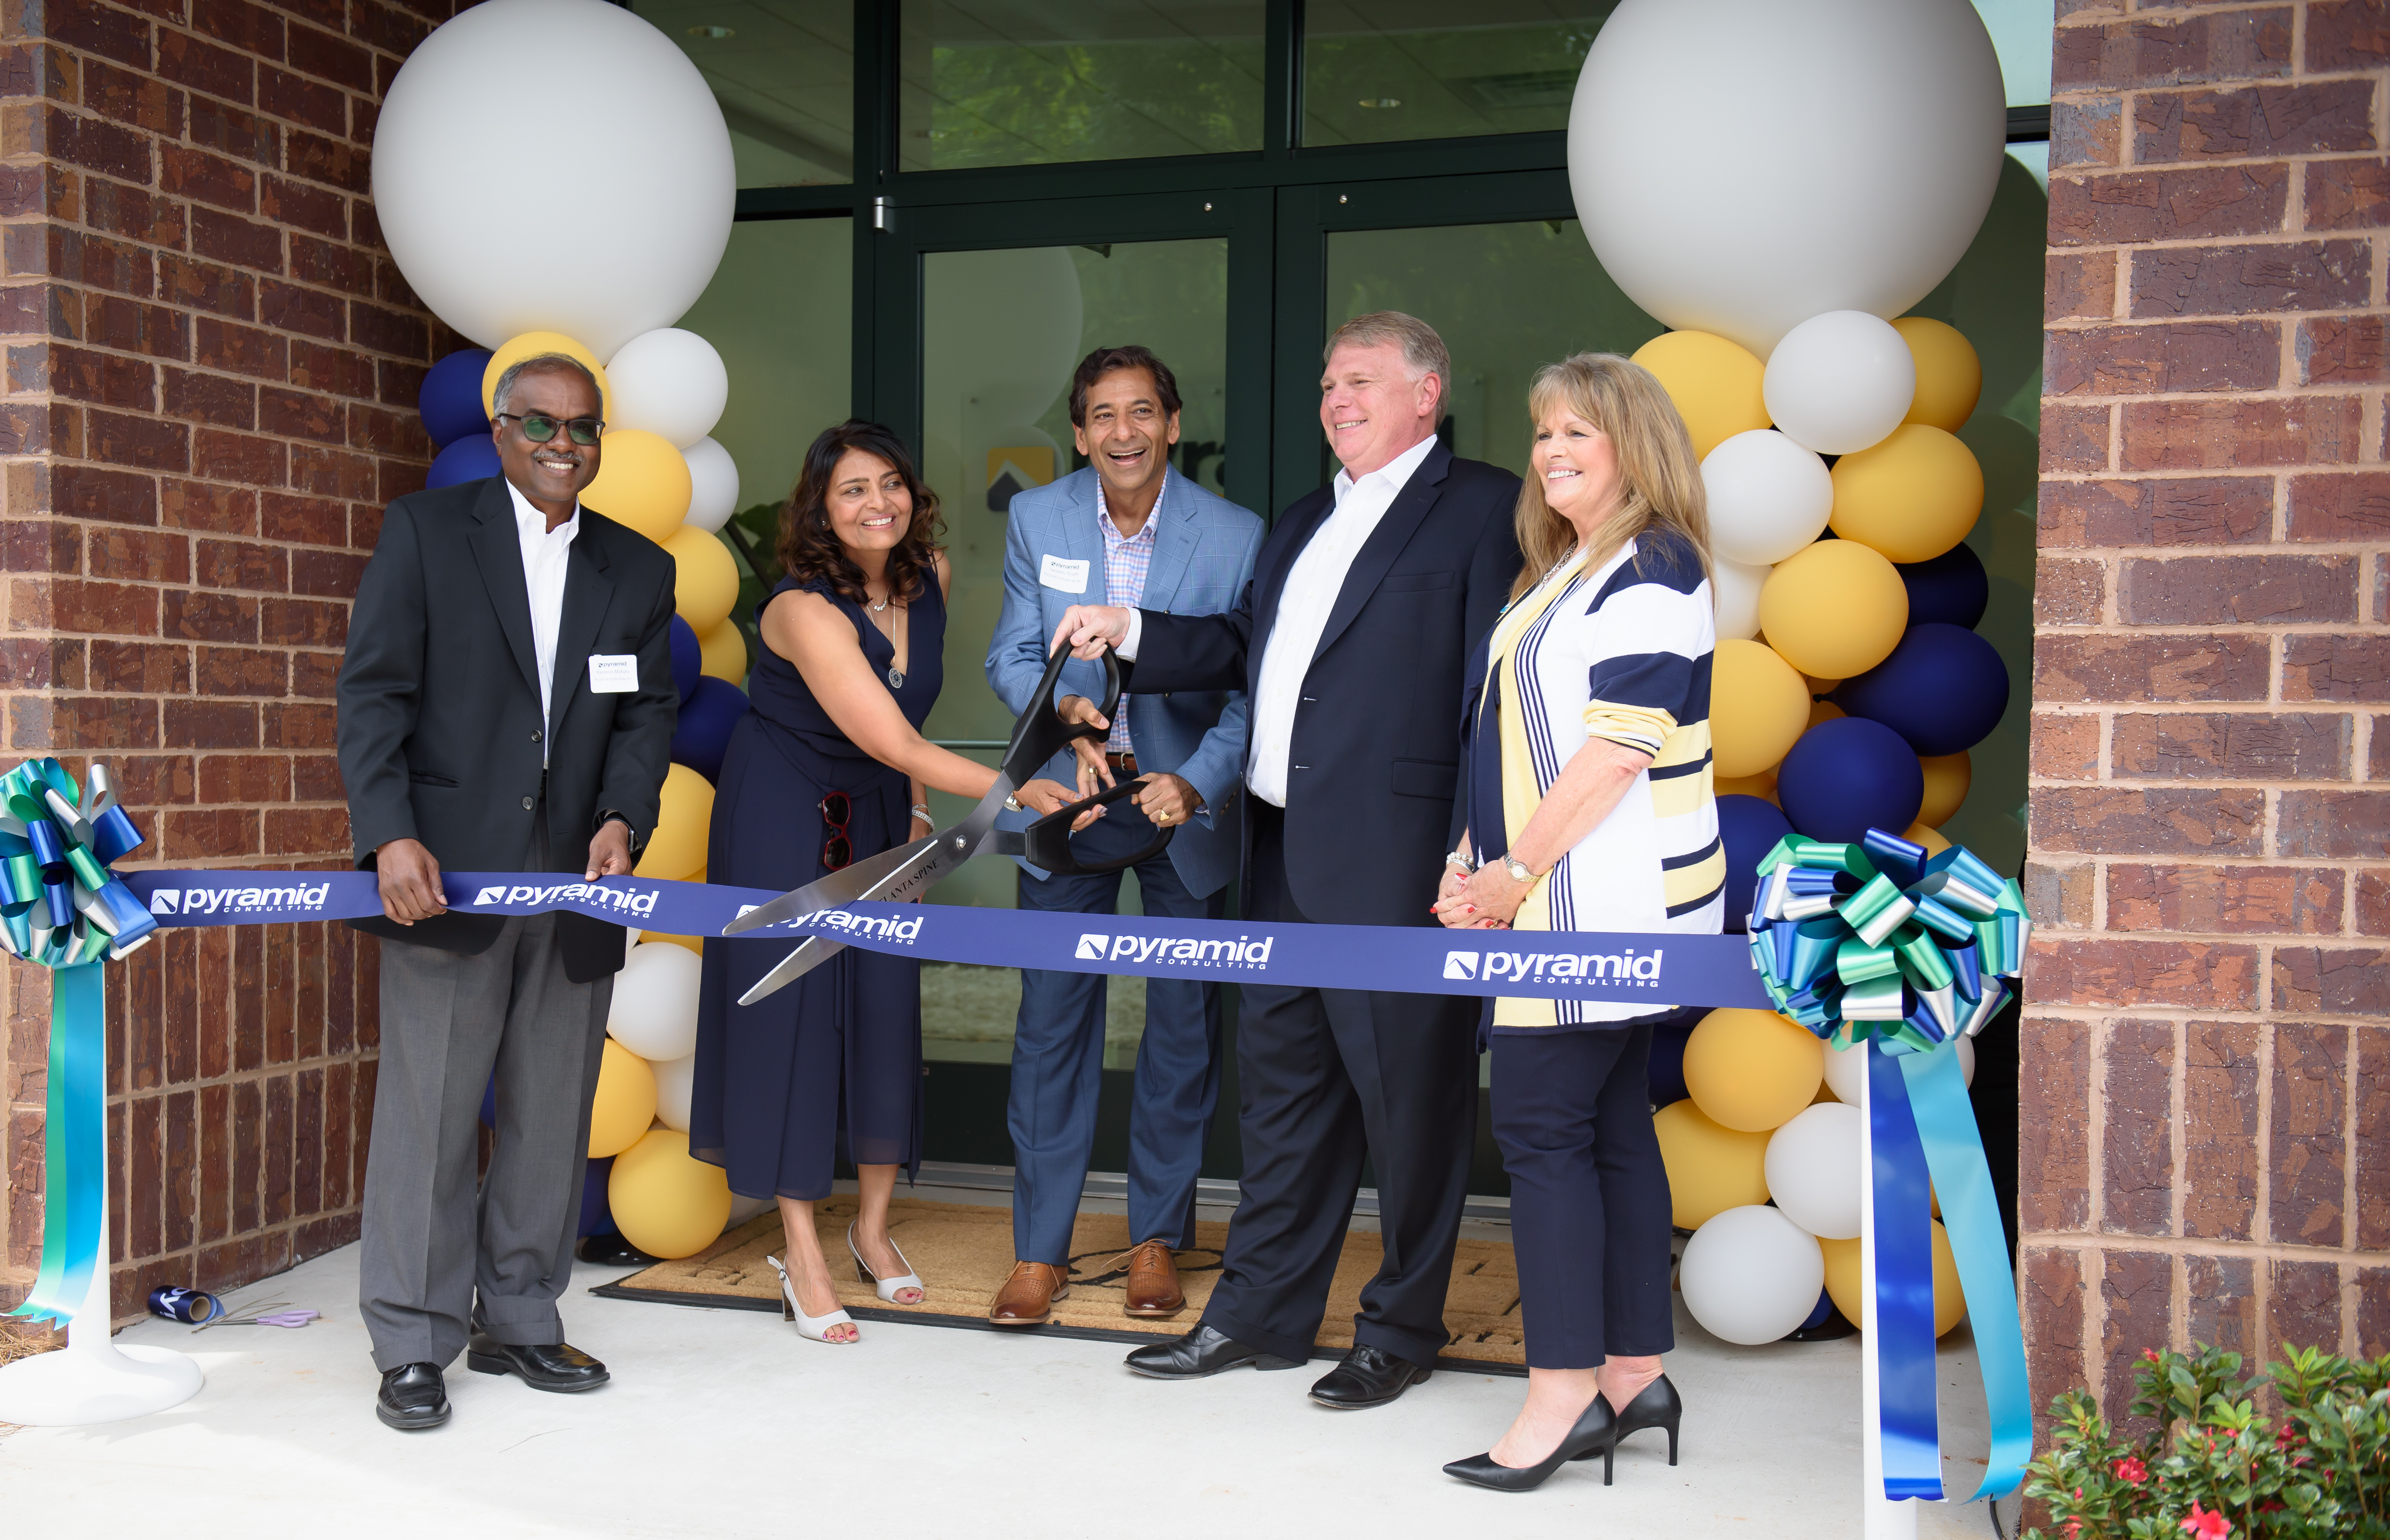 Pyramid's Global HQ Ribbon Cutting and Open House